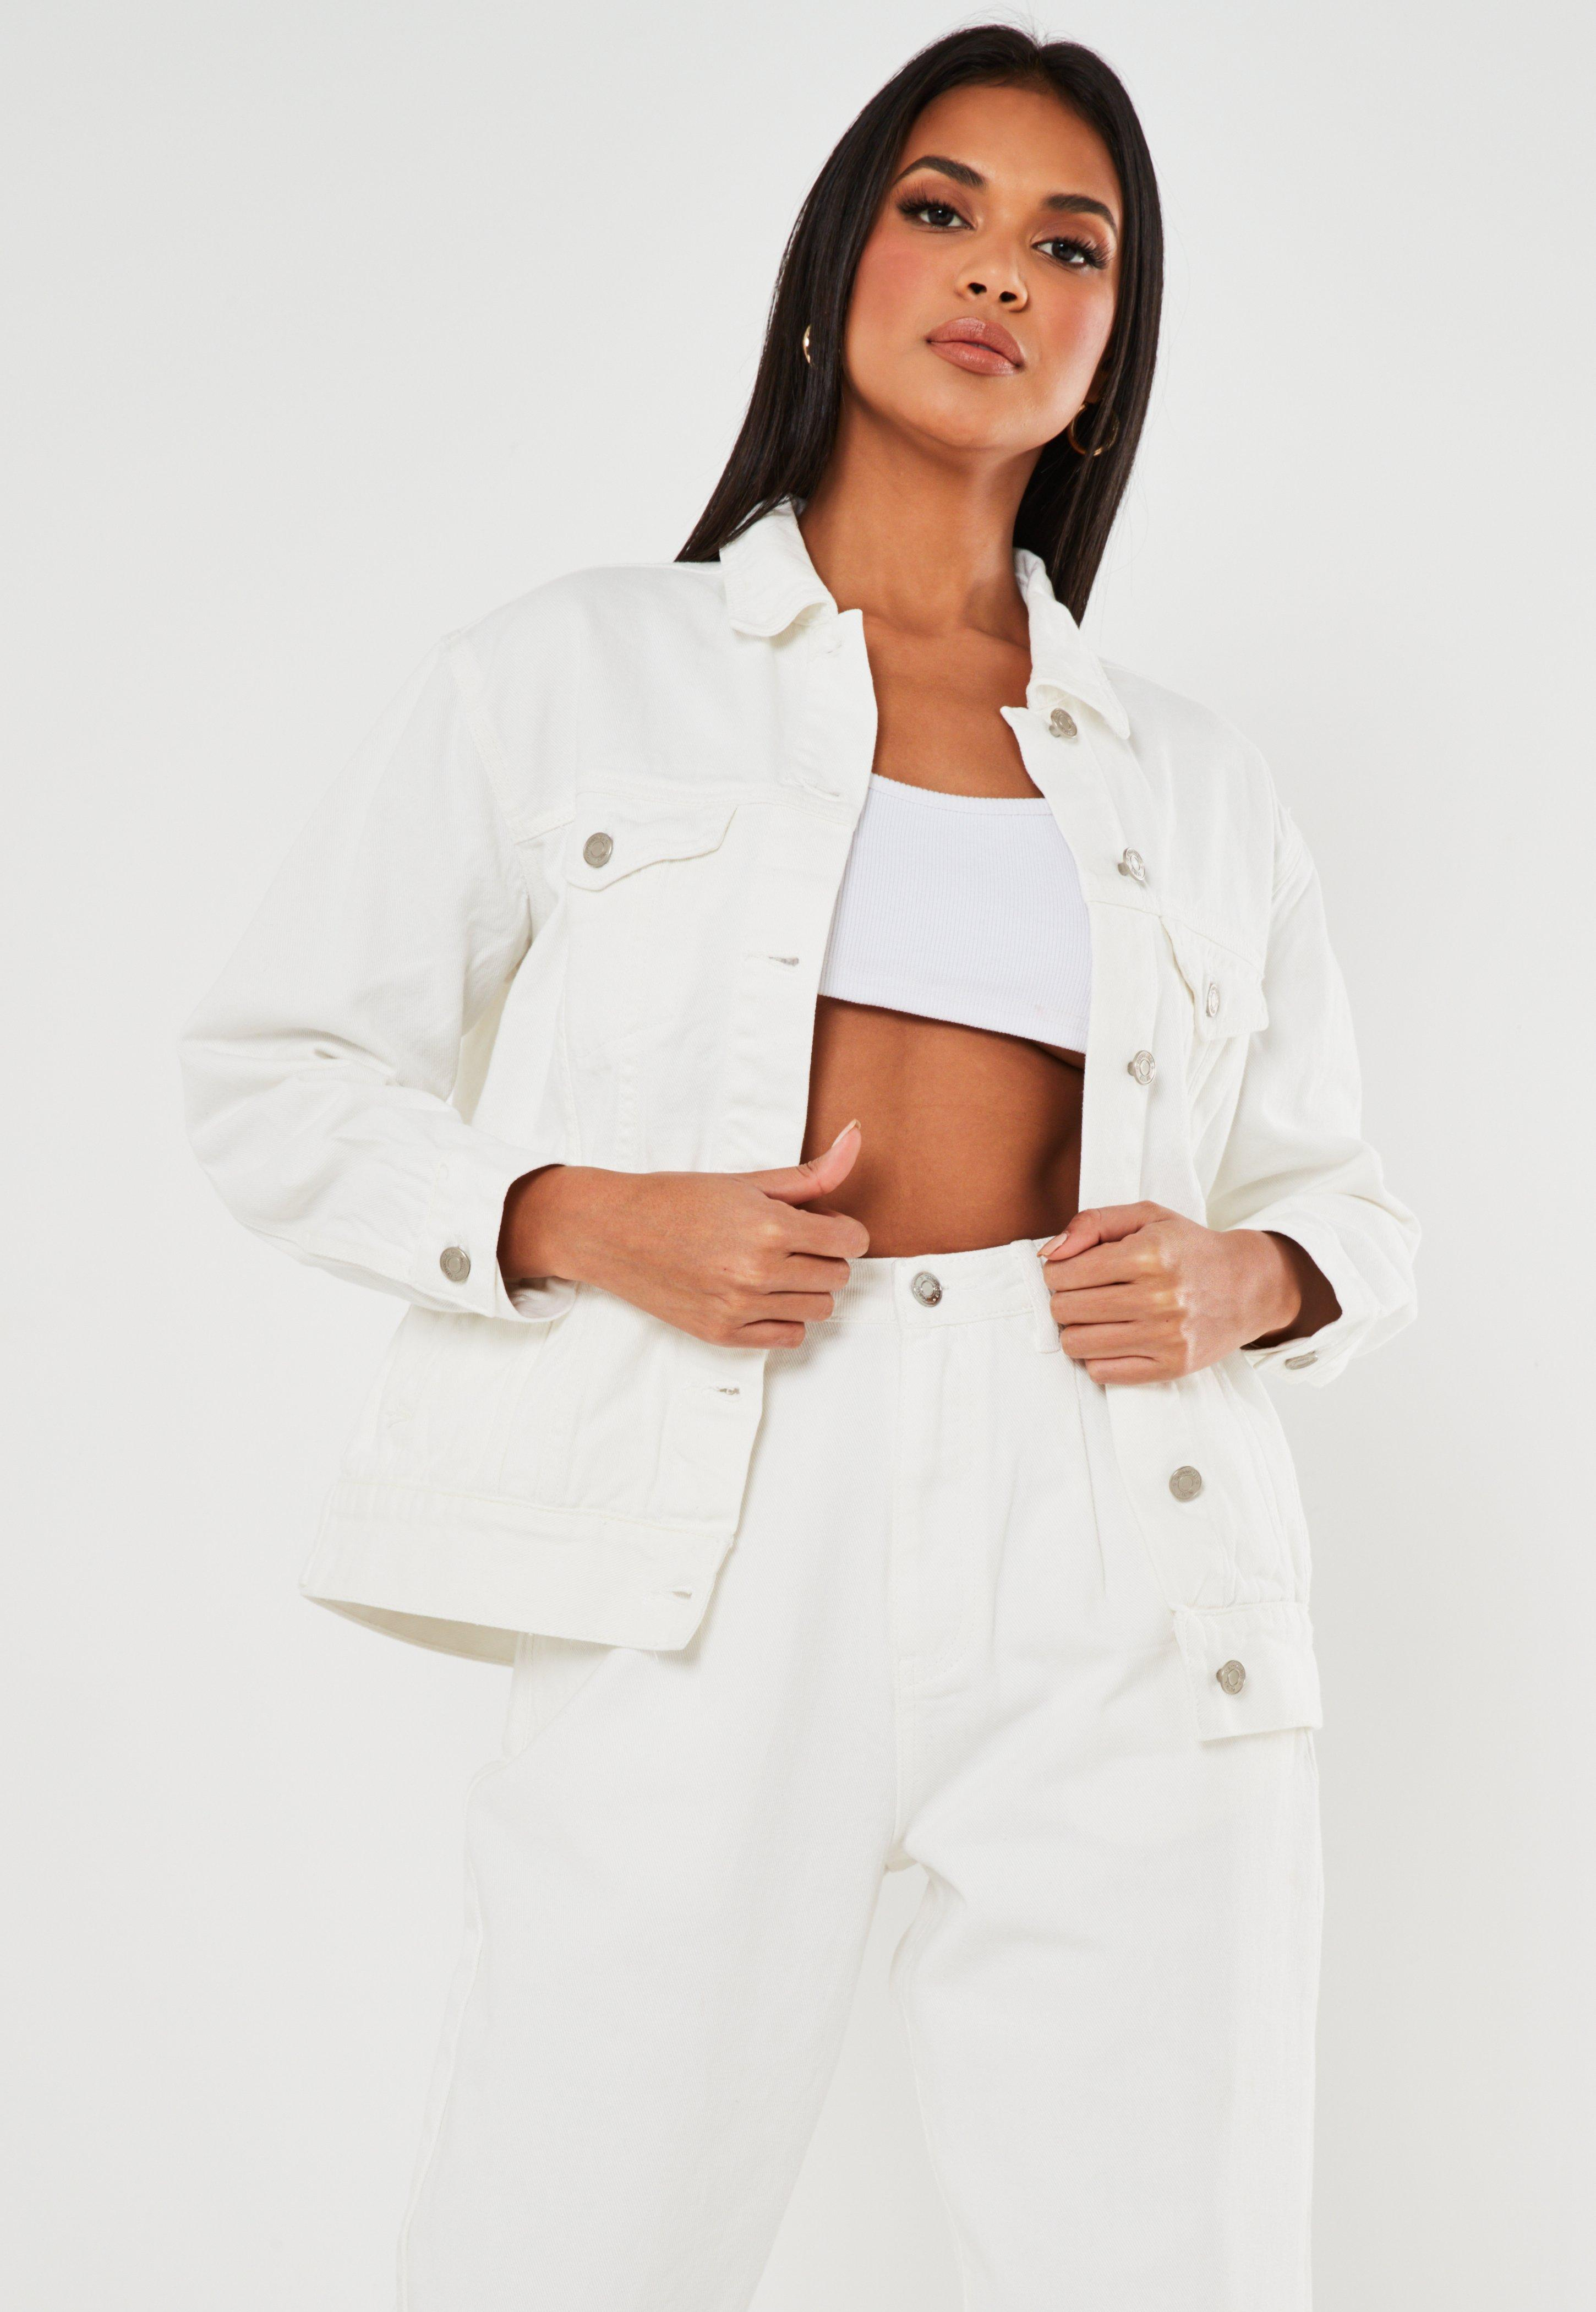 f17be4e58140 Coats & Jackets | Shop Women's Coats Online - Missguided